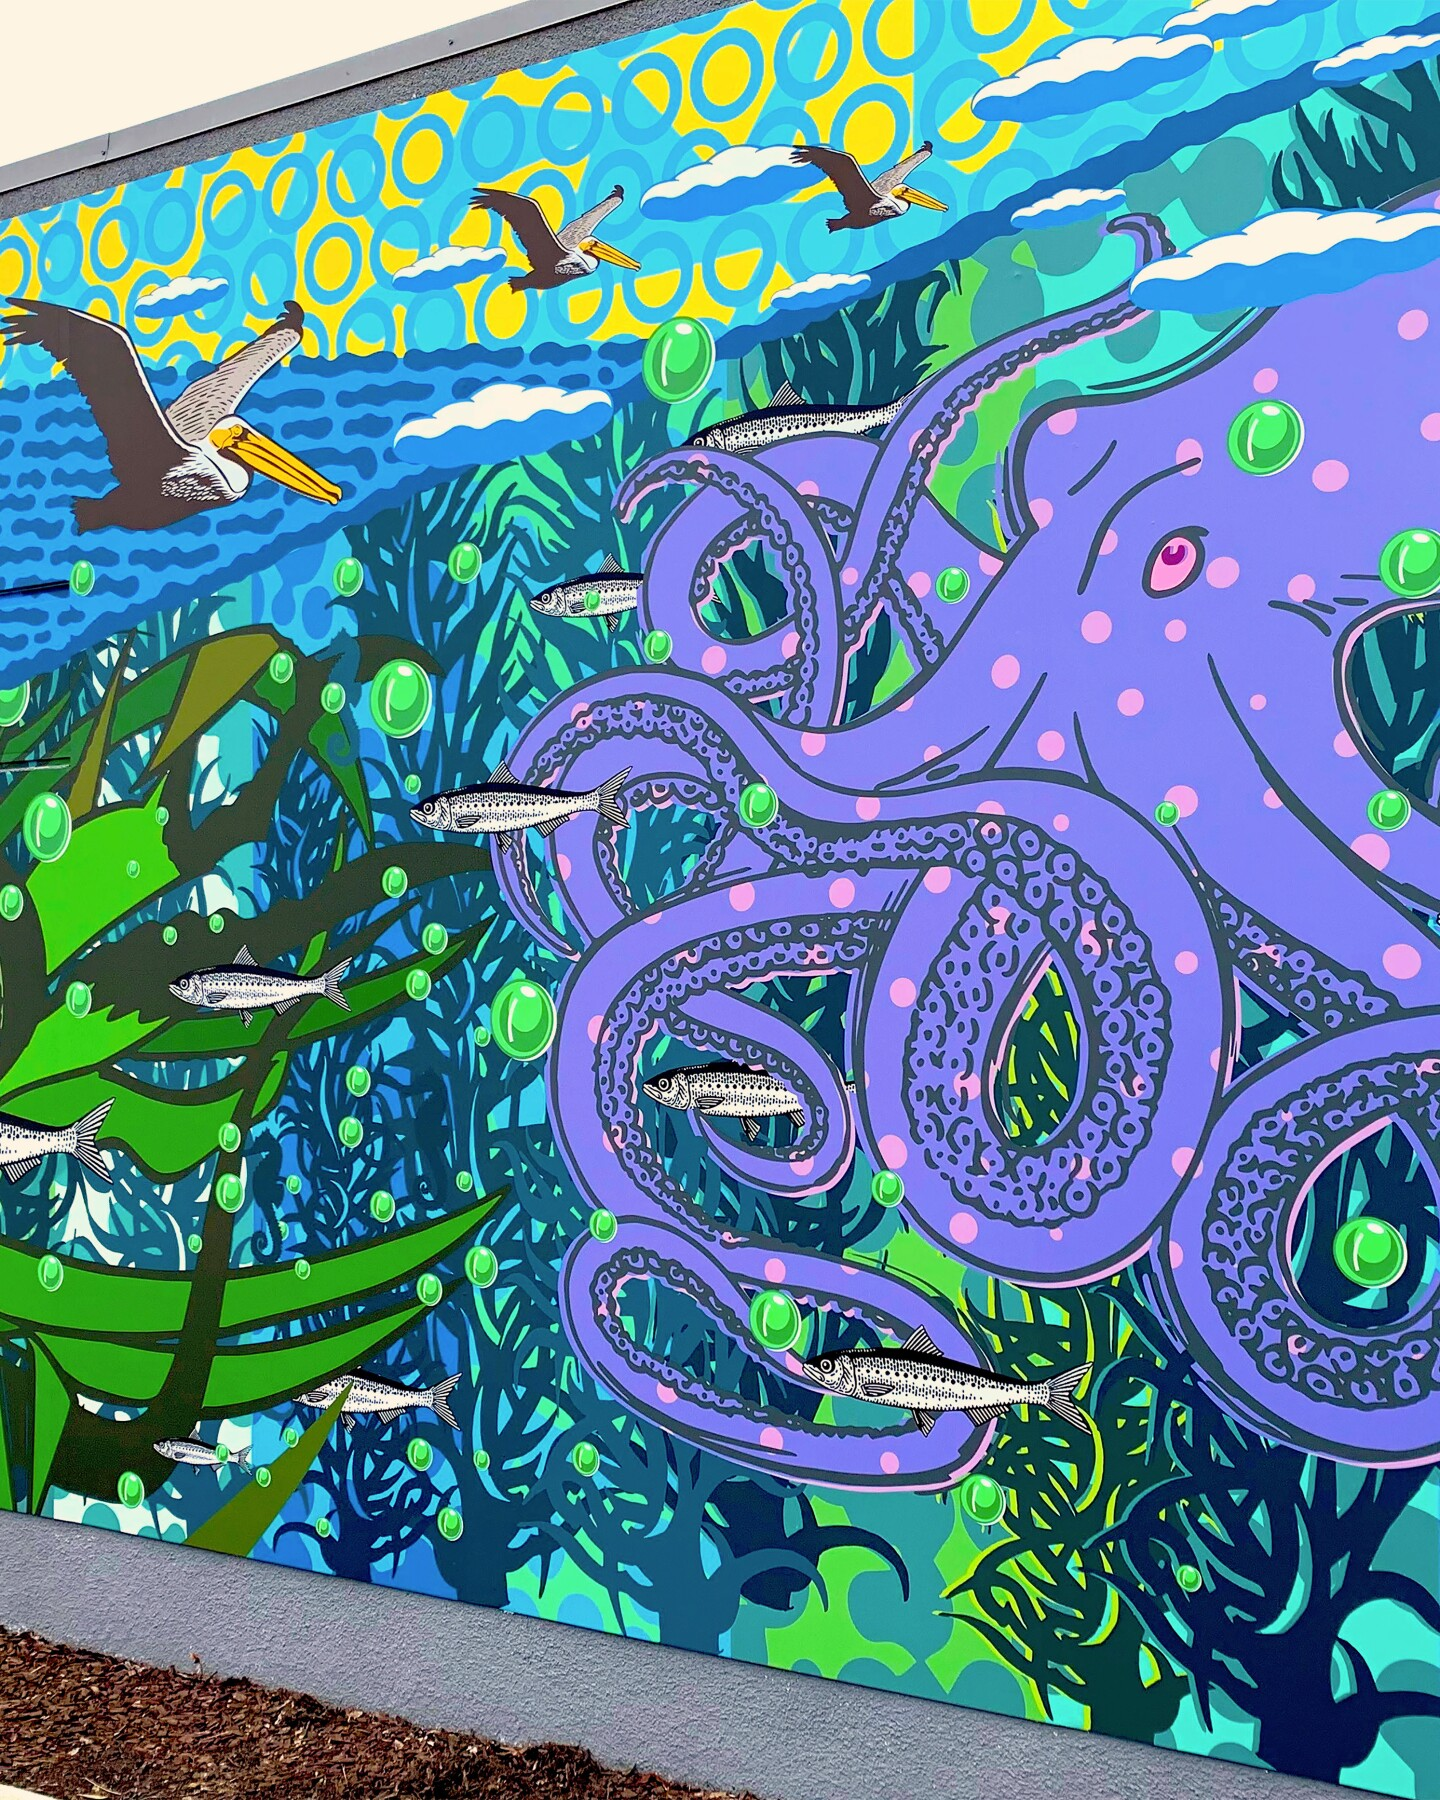 A colorful mural showing purple octopus, kelp, pelicans and fish.